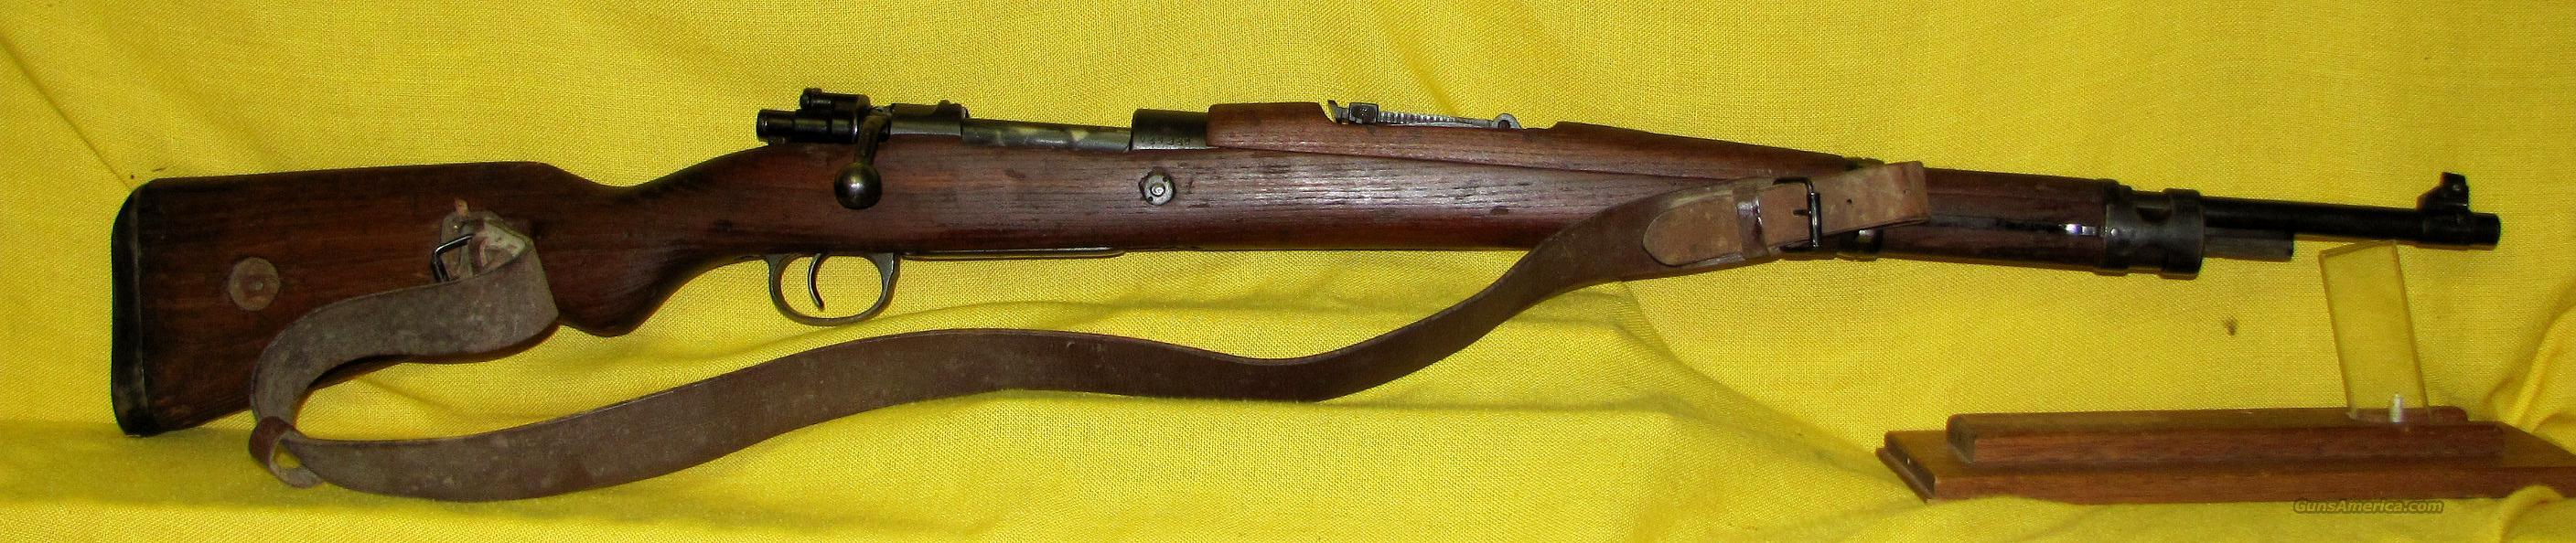 "MAUSER 98 8MM 23"" BARREL  Guns > Rifles > Military Misc. Rifles Non-US > Other"